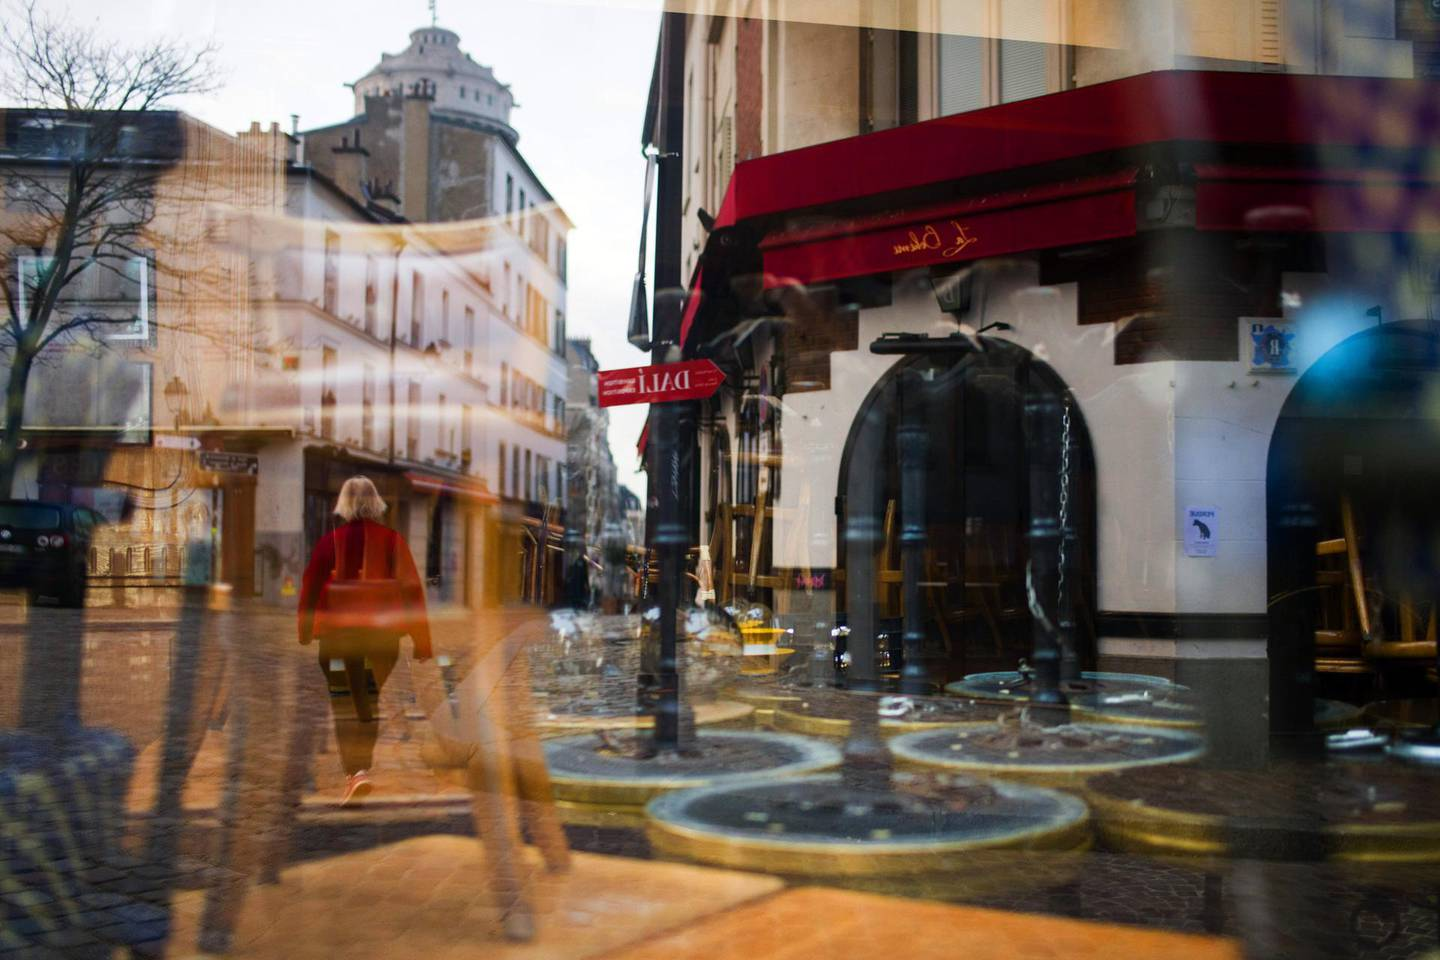 Stacked chairs inside a closed cafe in the Montmartre district in Paris, France, on Tuesday, Nov. 24, 2020. The French government plans to ease measures put in place against the deadly coronavirus in three steps as infections recede, while keeping some restrictions in place to contain the epidemic. Photographer: Nathan Laine/Bloomberg